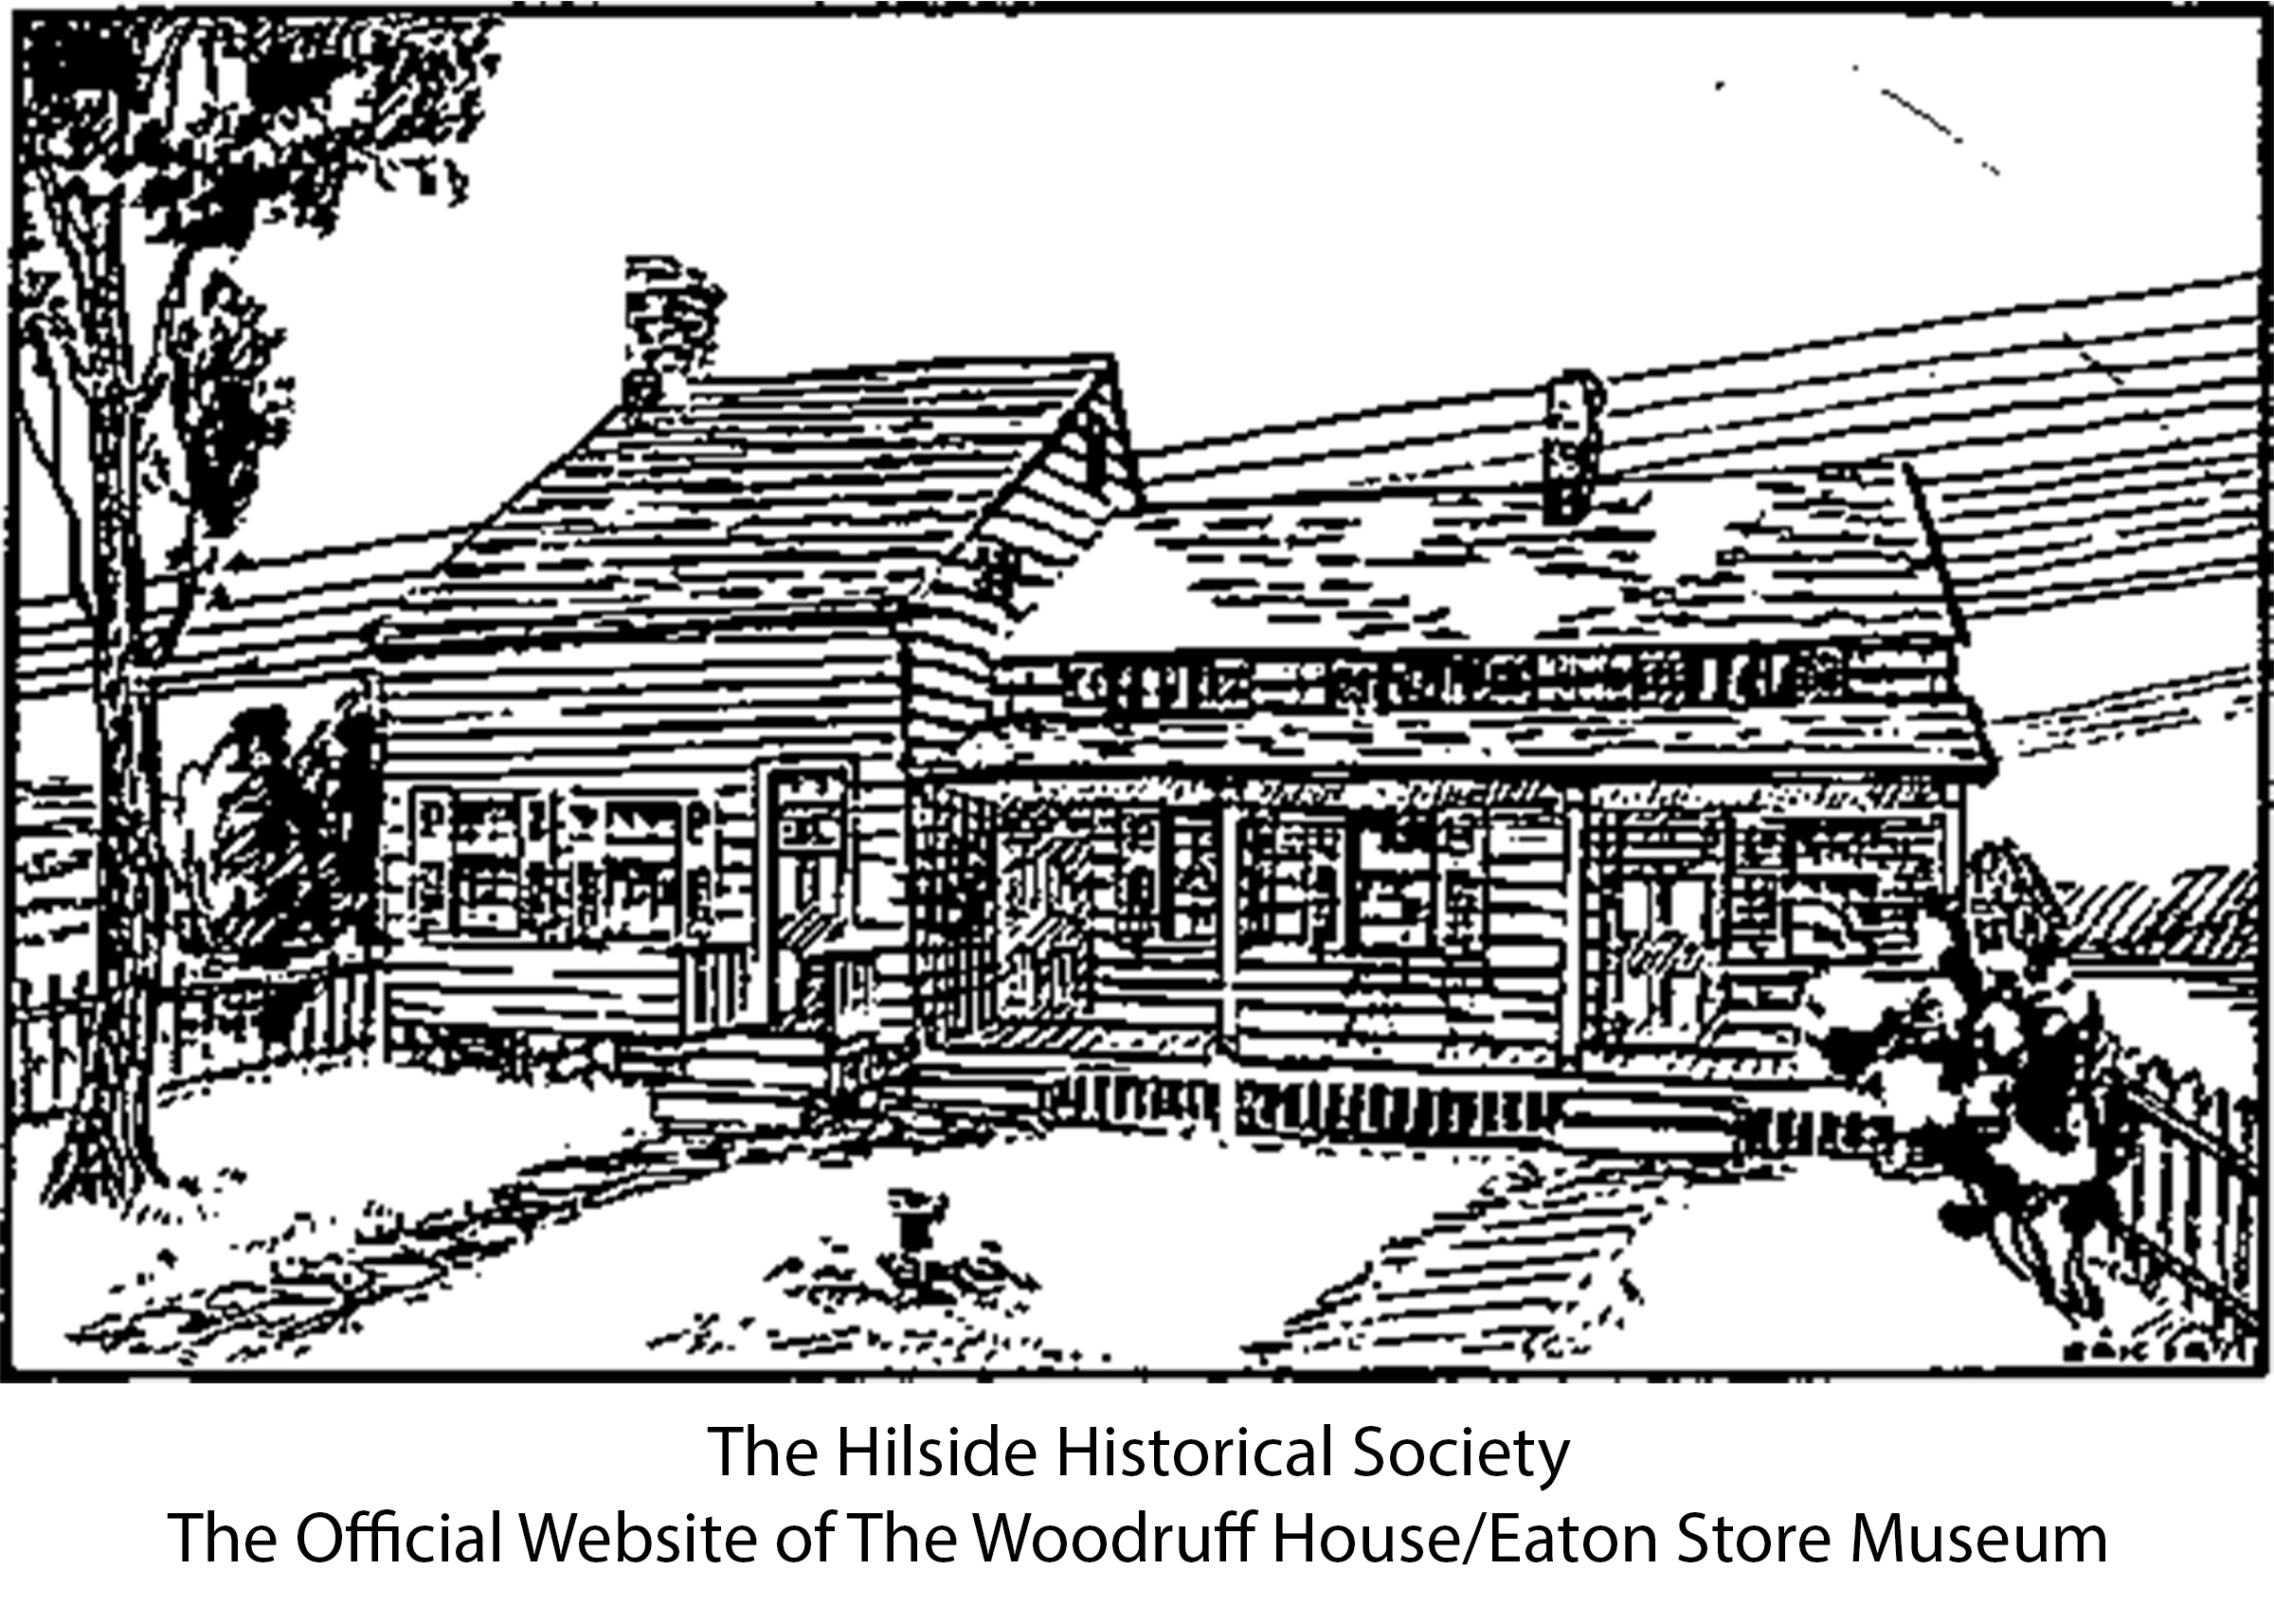 Welcome to The Official Website of The Woodruff House/Eaton Store Museum